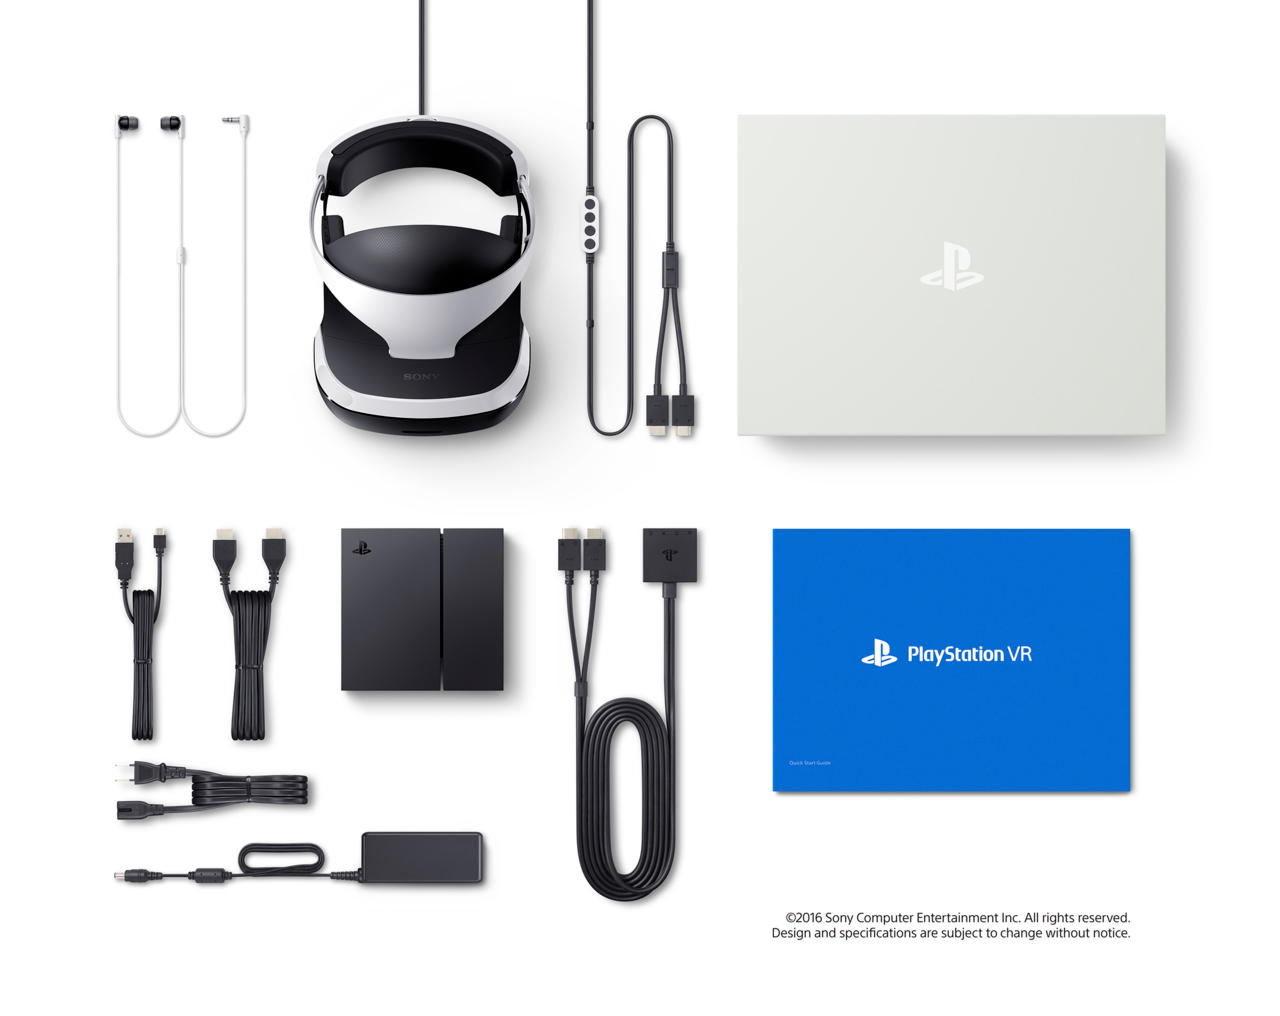 This is what the $400 PlayStation VR package comes with.